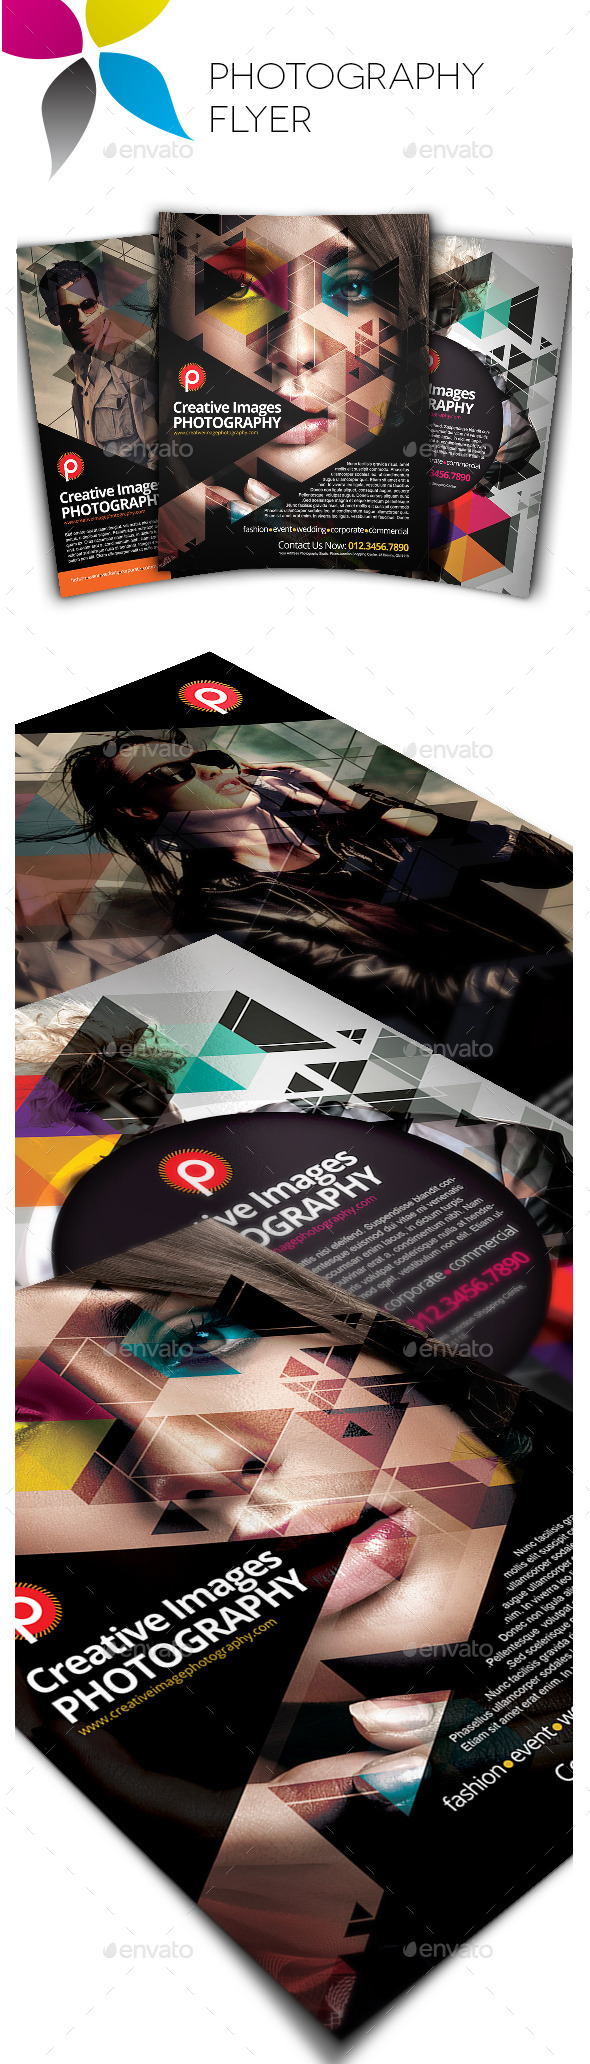 GraphicRiver Photography Flyer 10514414